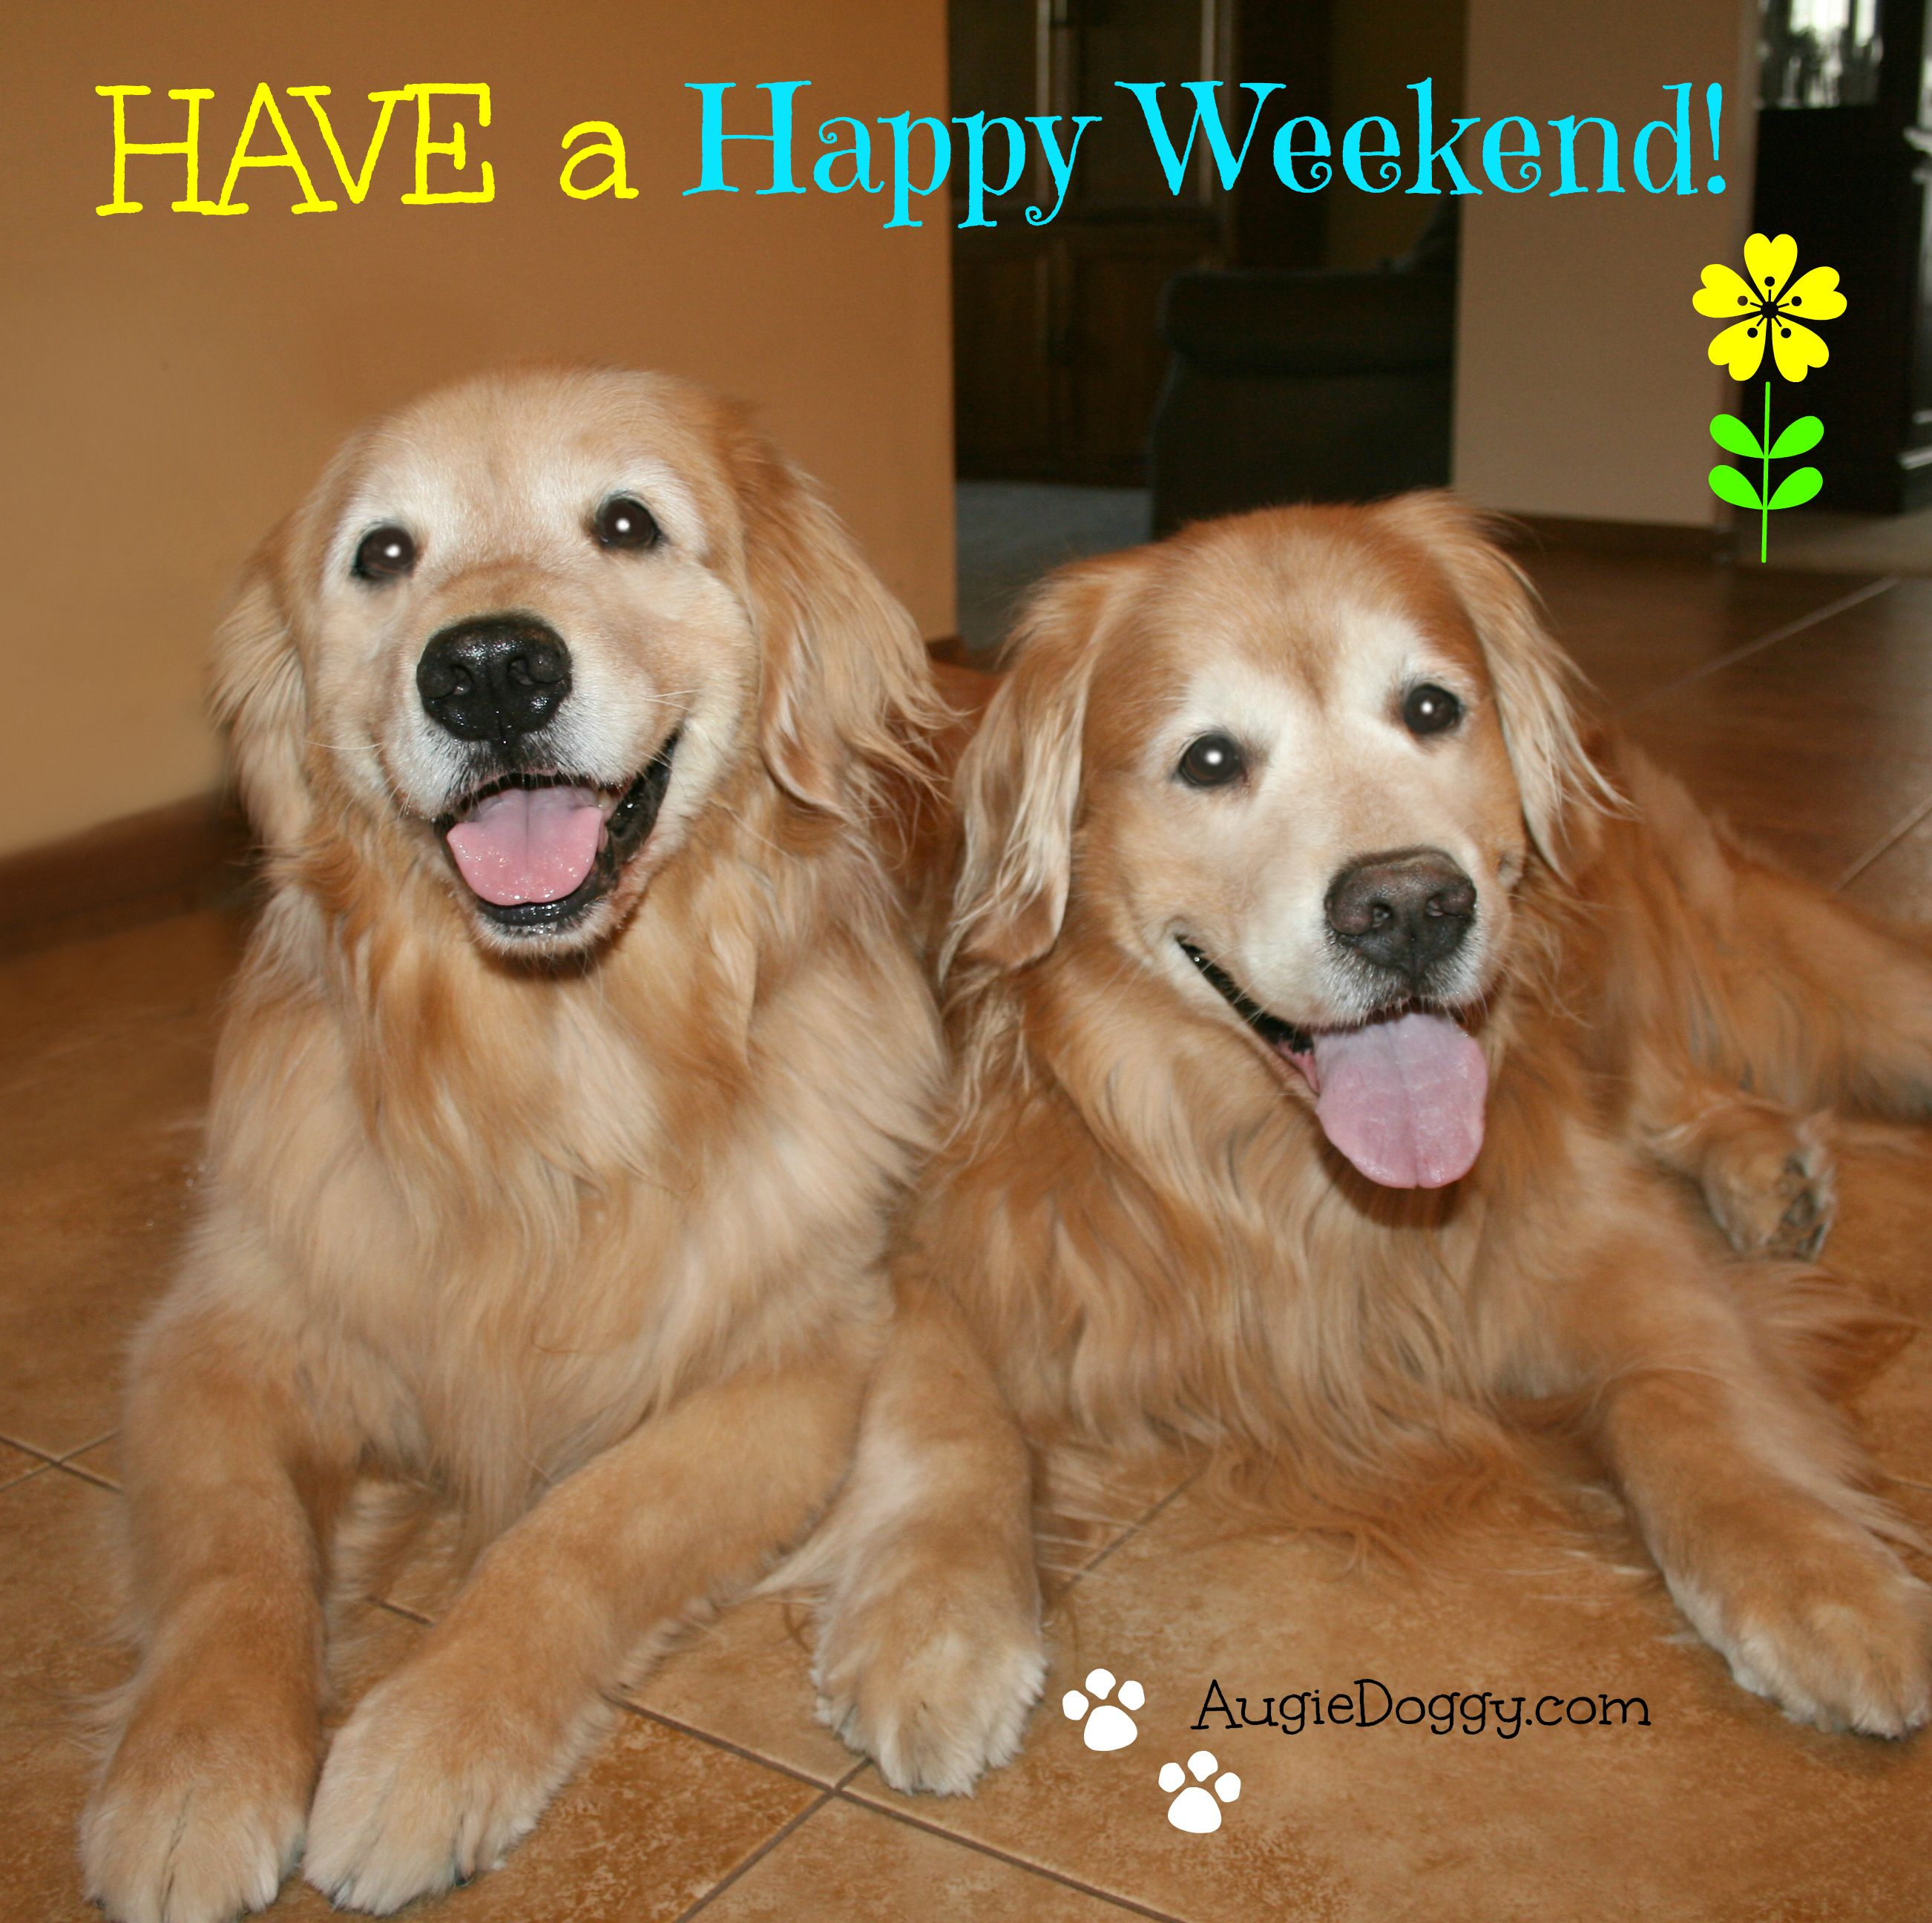 Happy Weekend From Augie And Ti Dogs Golden Retriever Golden Retriever Dogs